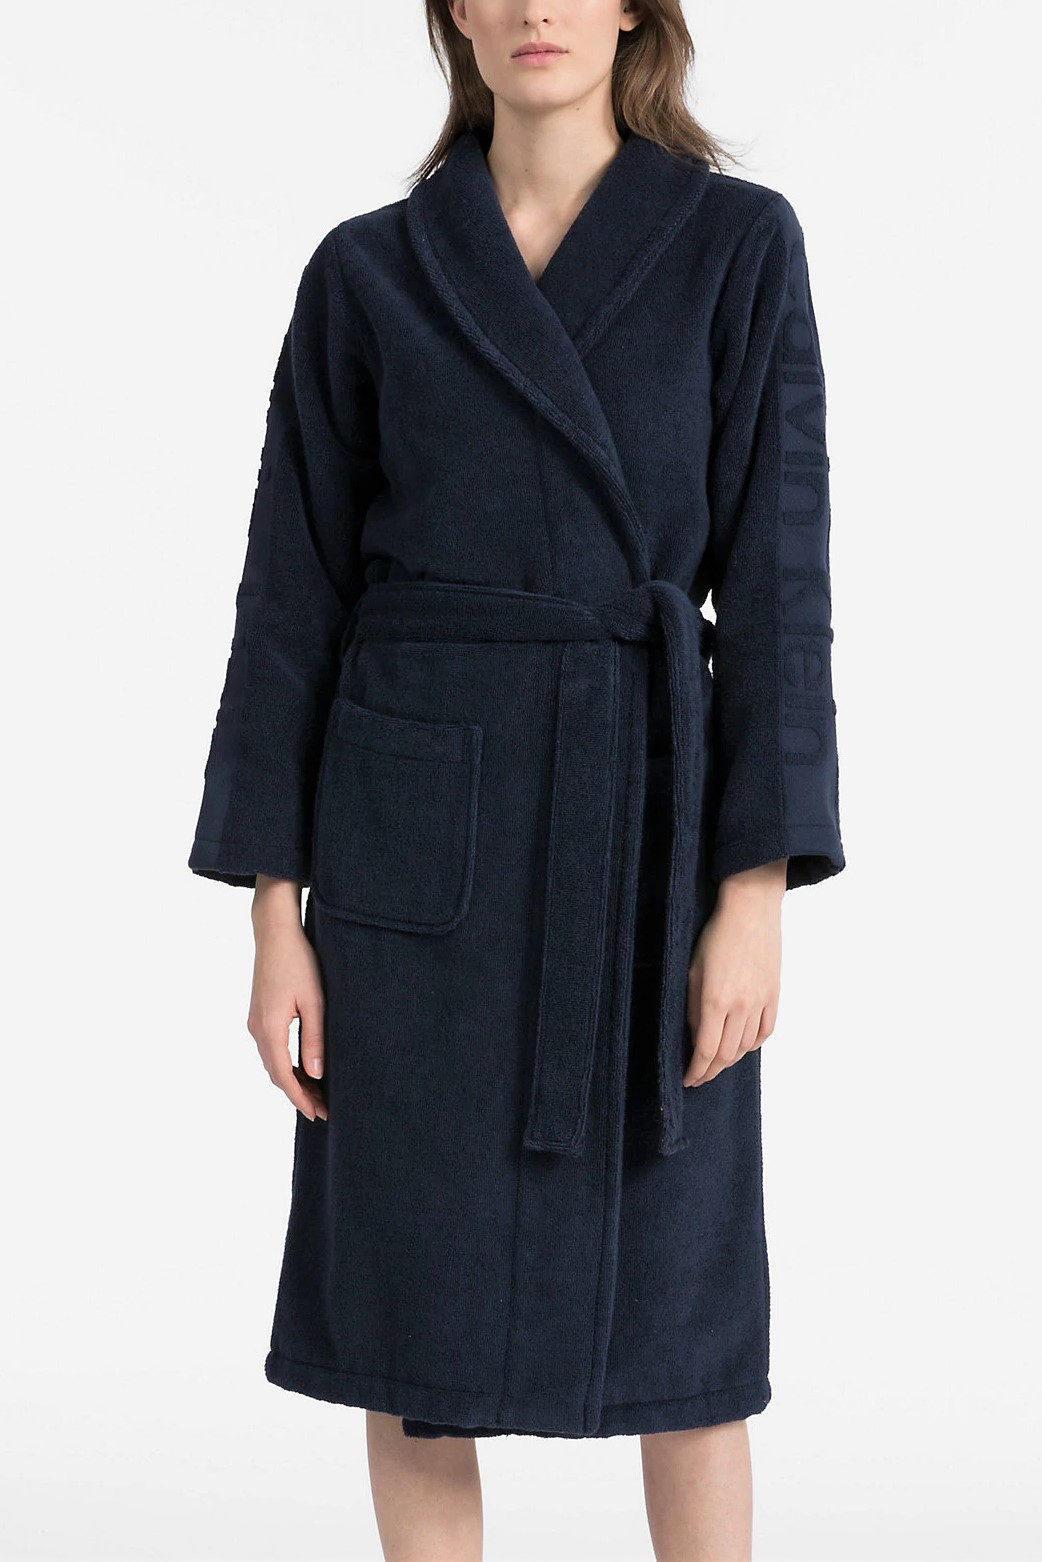 Calvin Klein Dark Blue Uni Bathrobe Robe